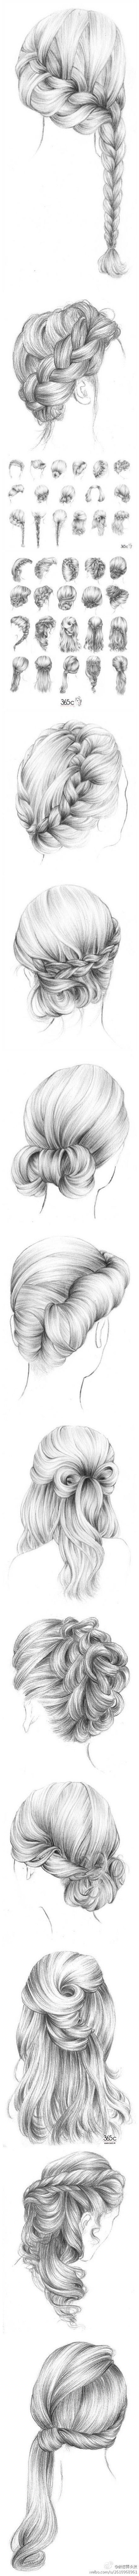 Gorgeous hairstyles! Perhaps easier to use as drawing refetences than to recreate in real life :P